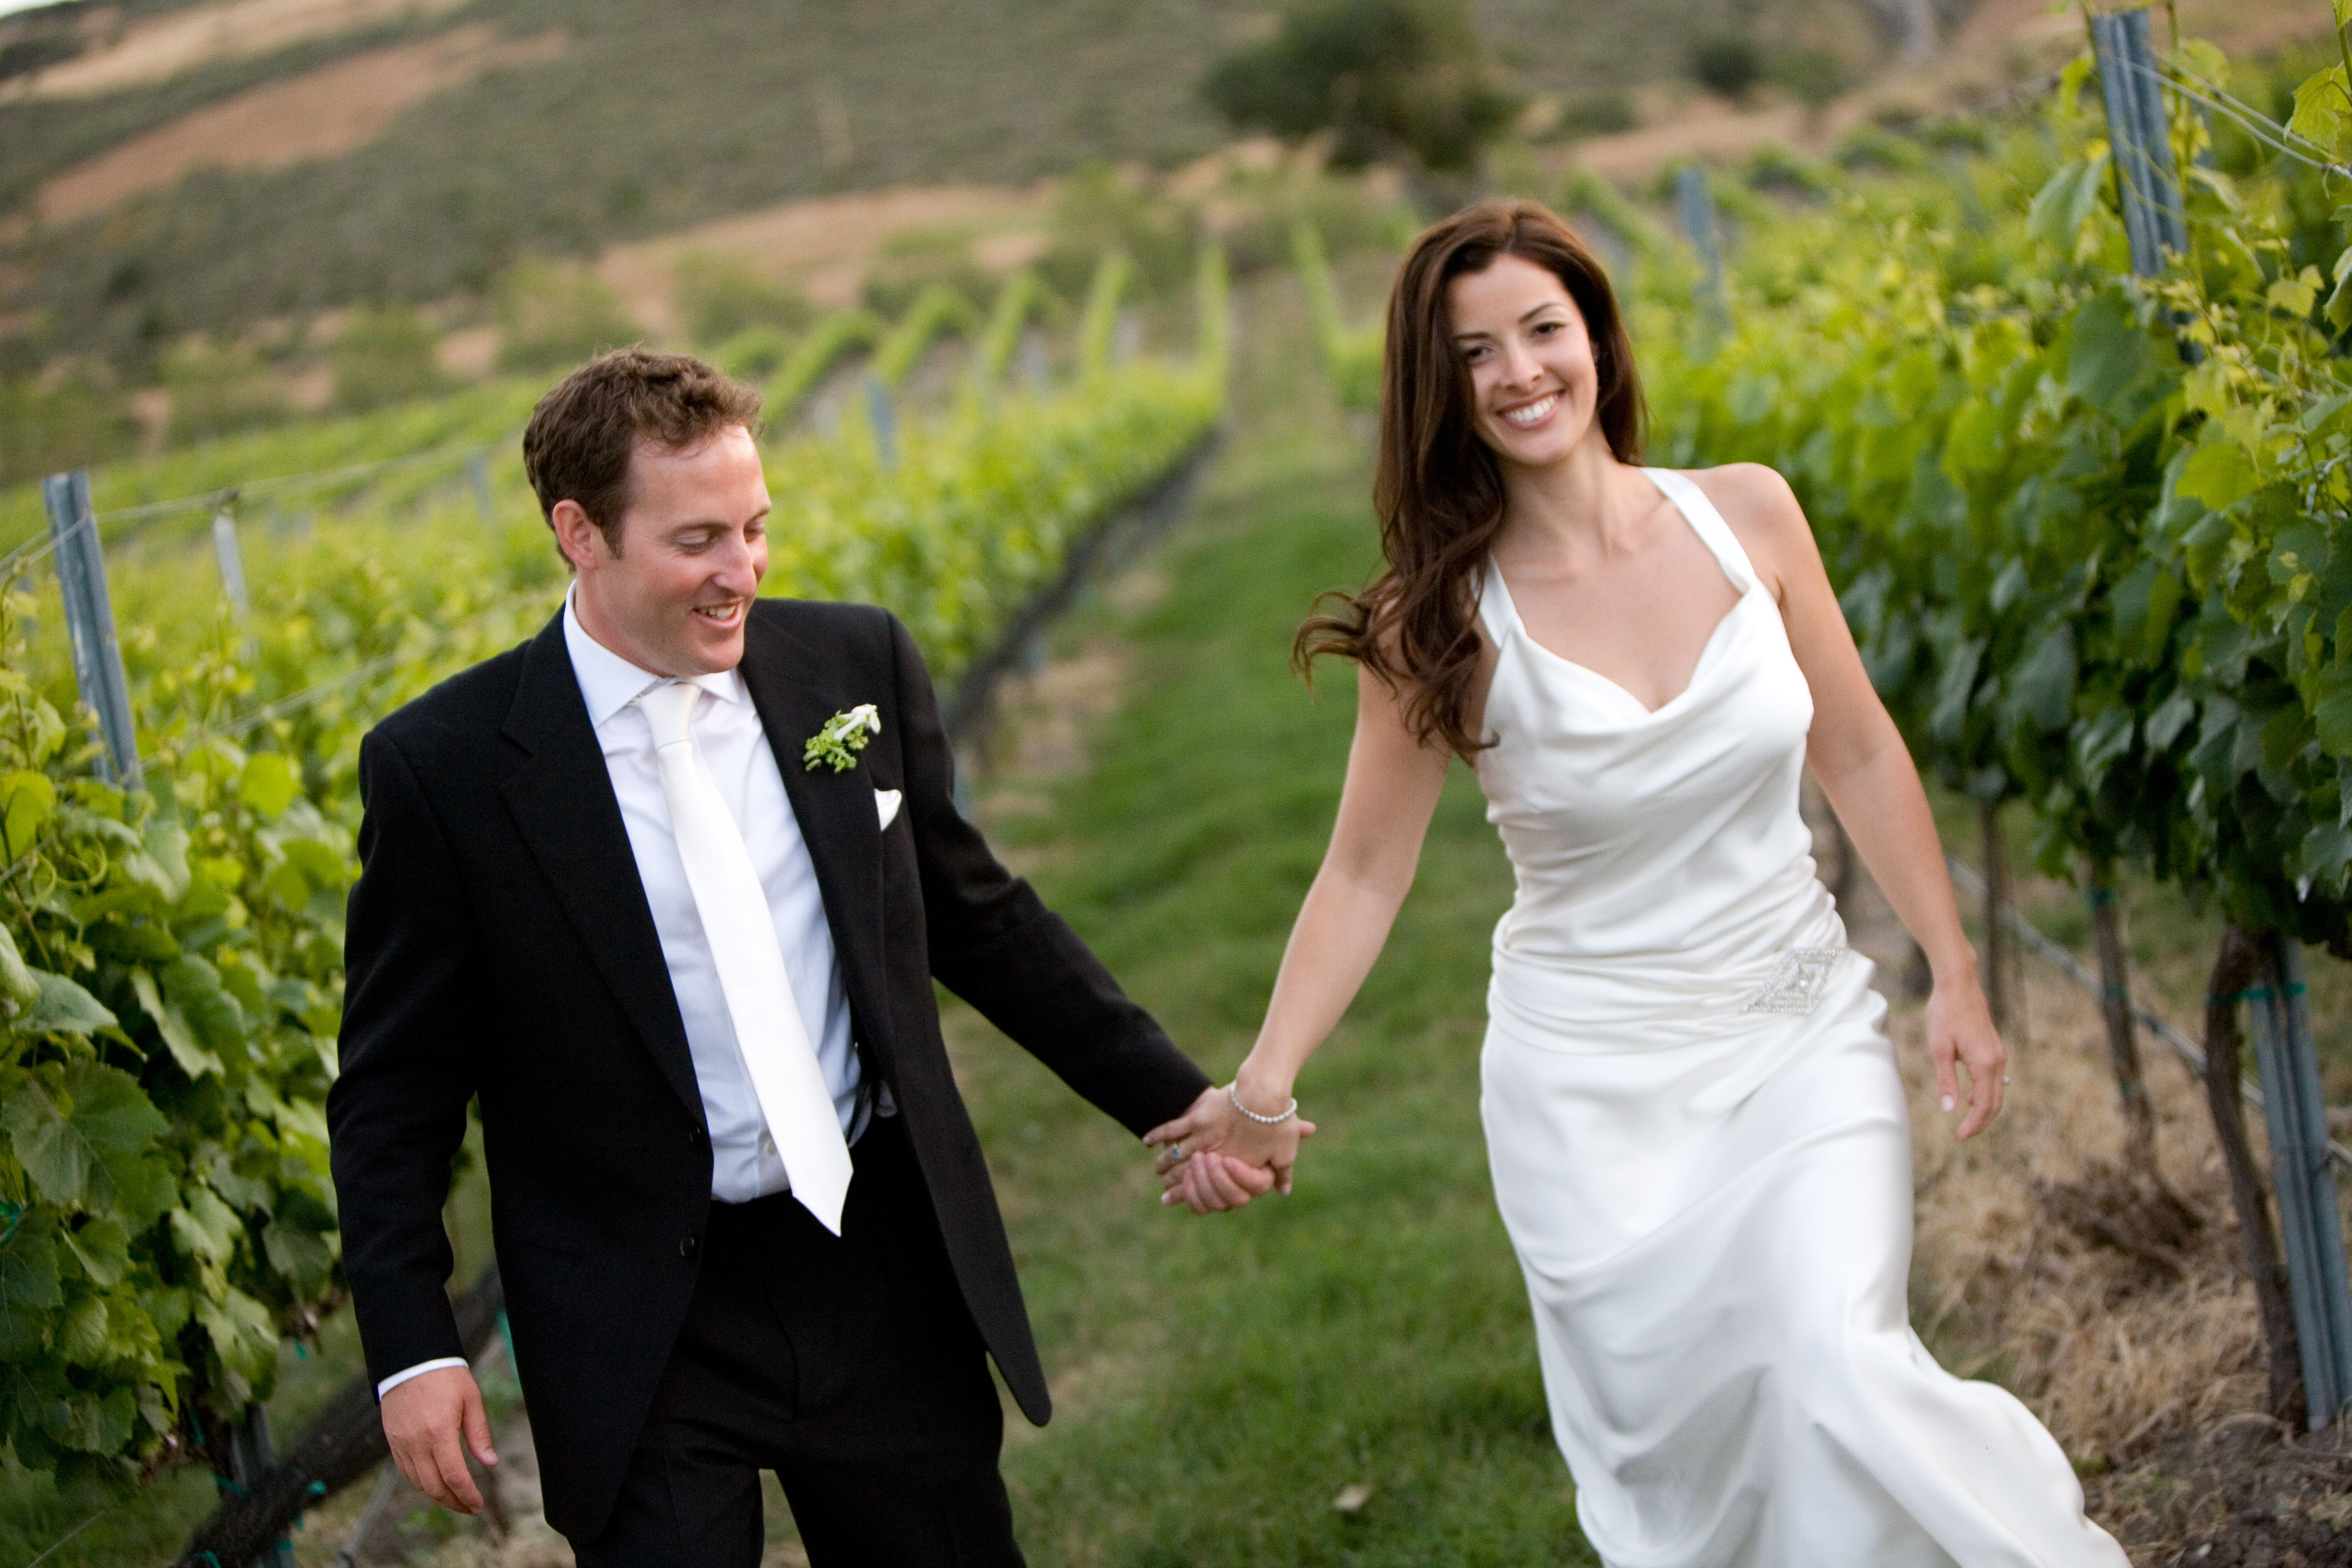 Walking in the vineyards of Foley Winery